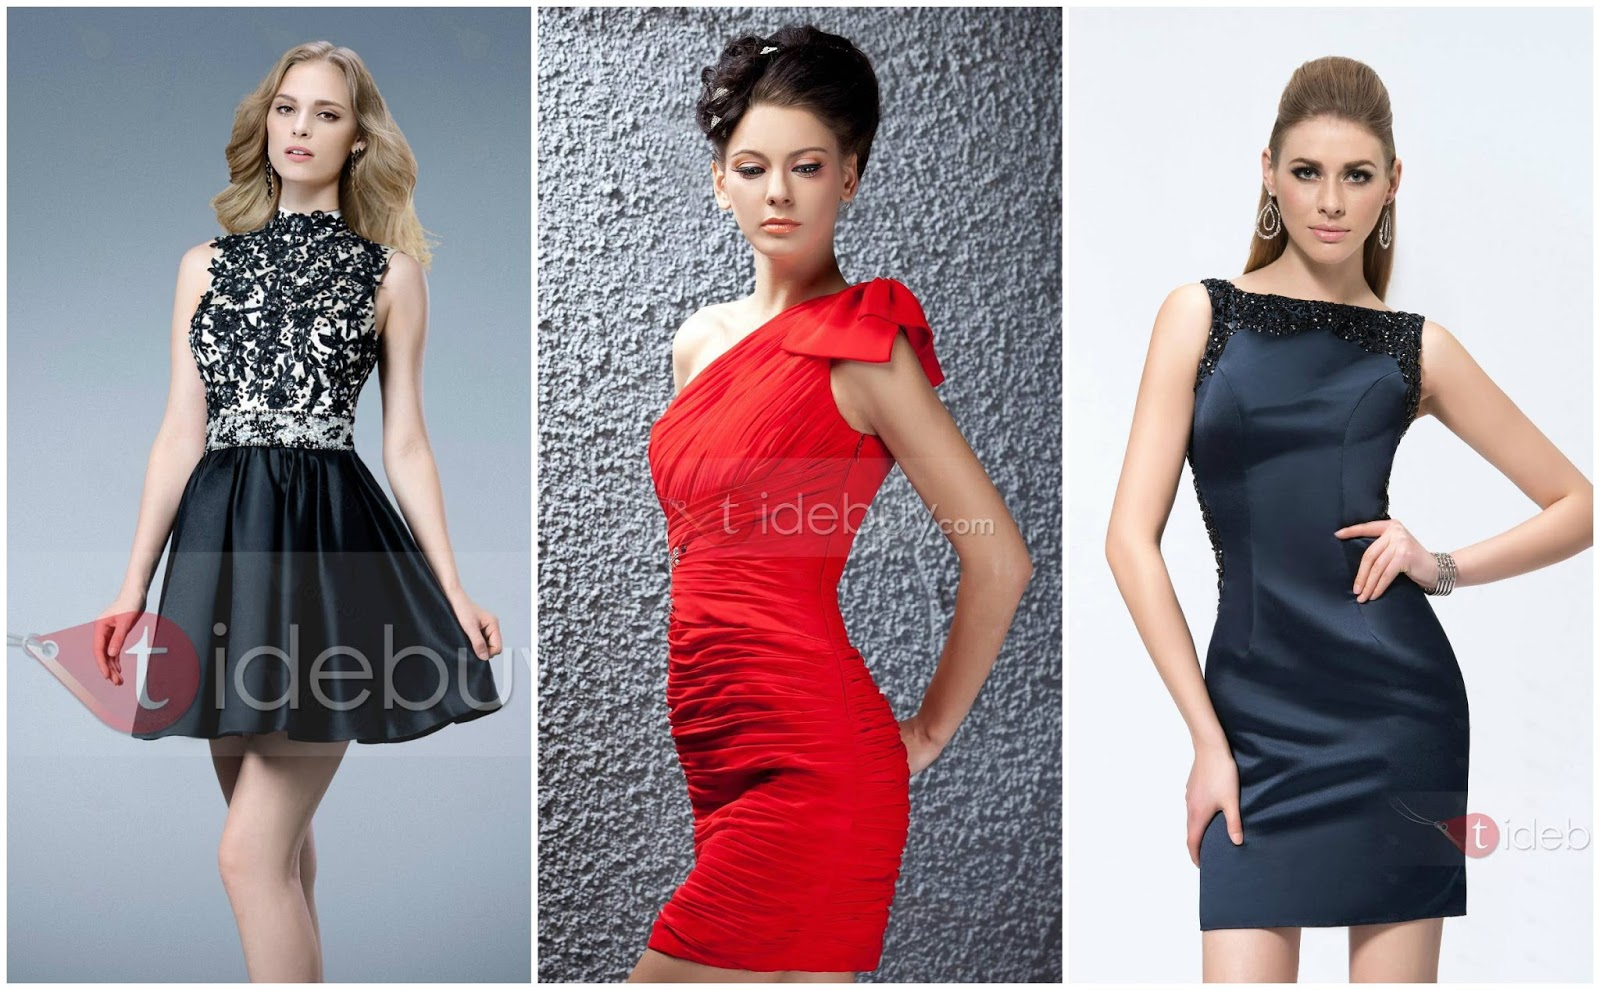 Cocktail Dresses From Tidebuy.com